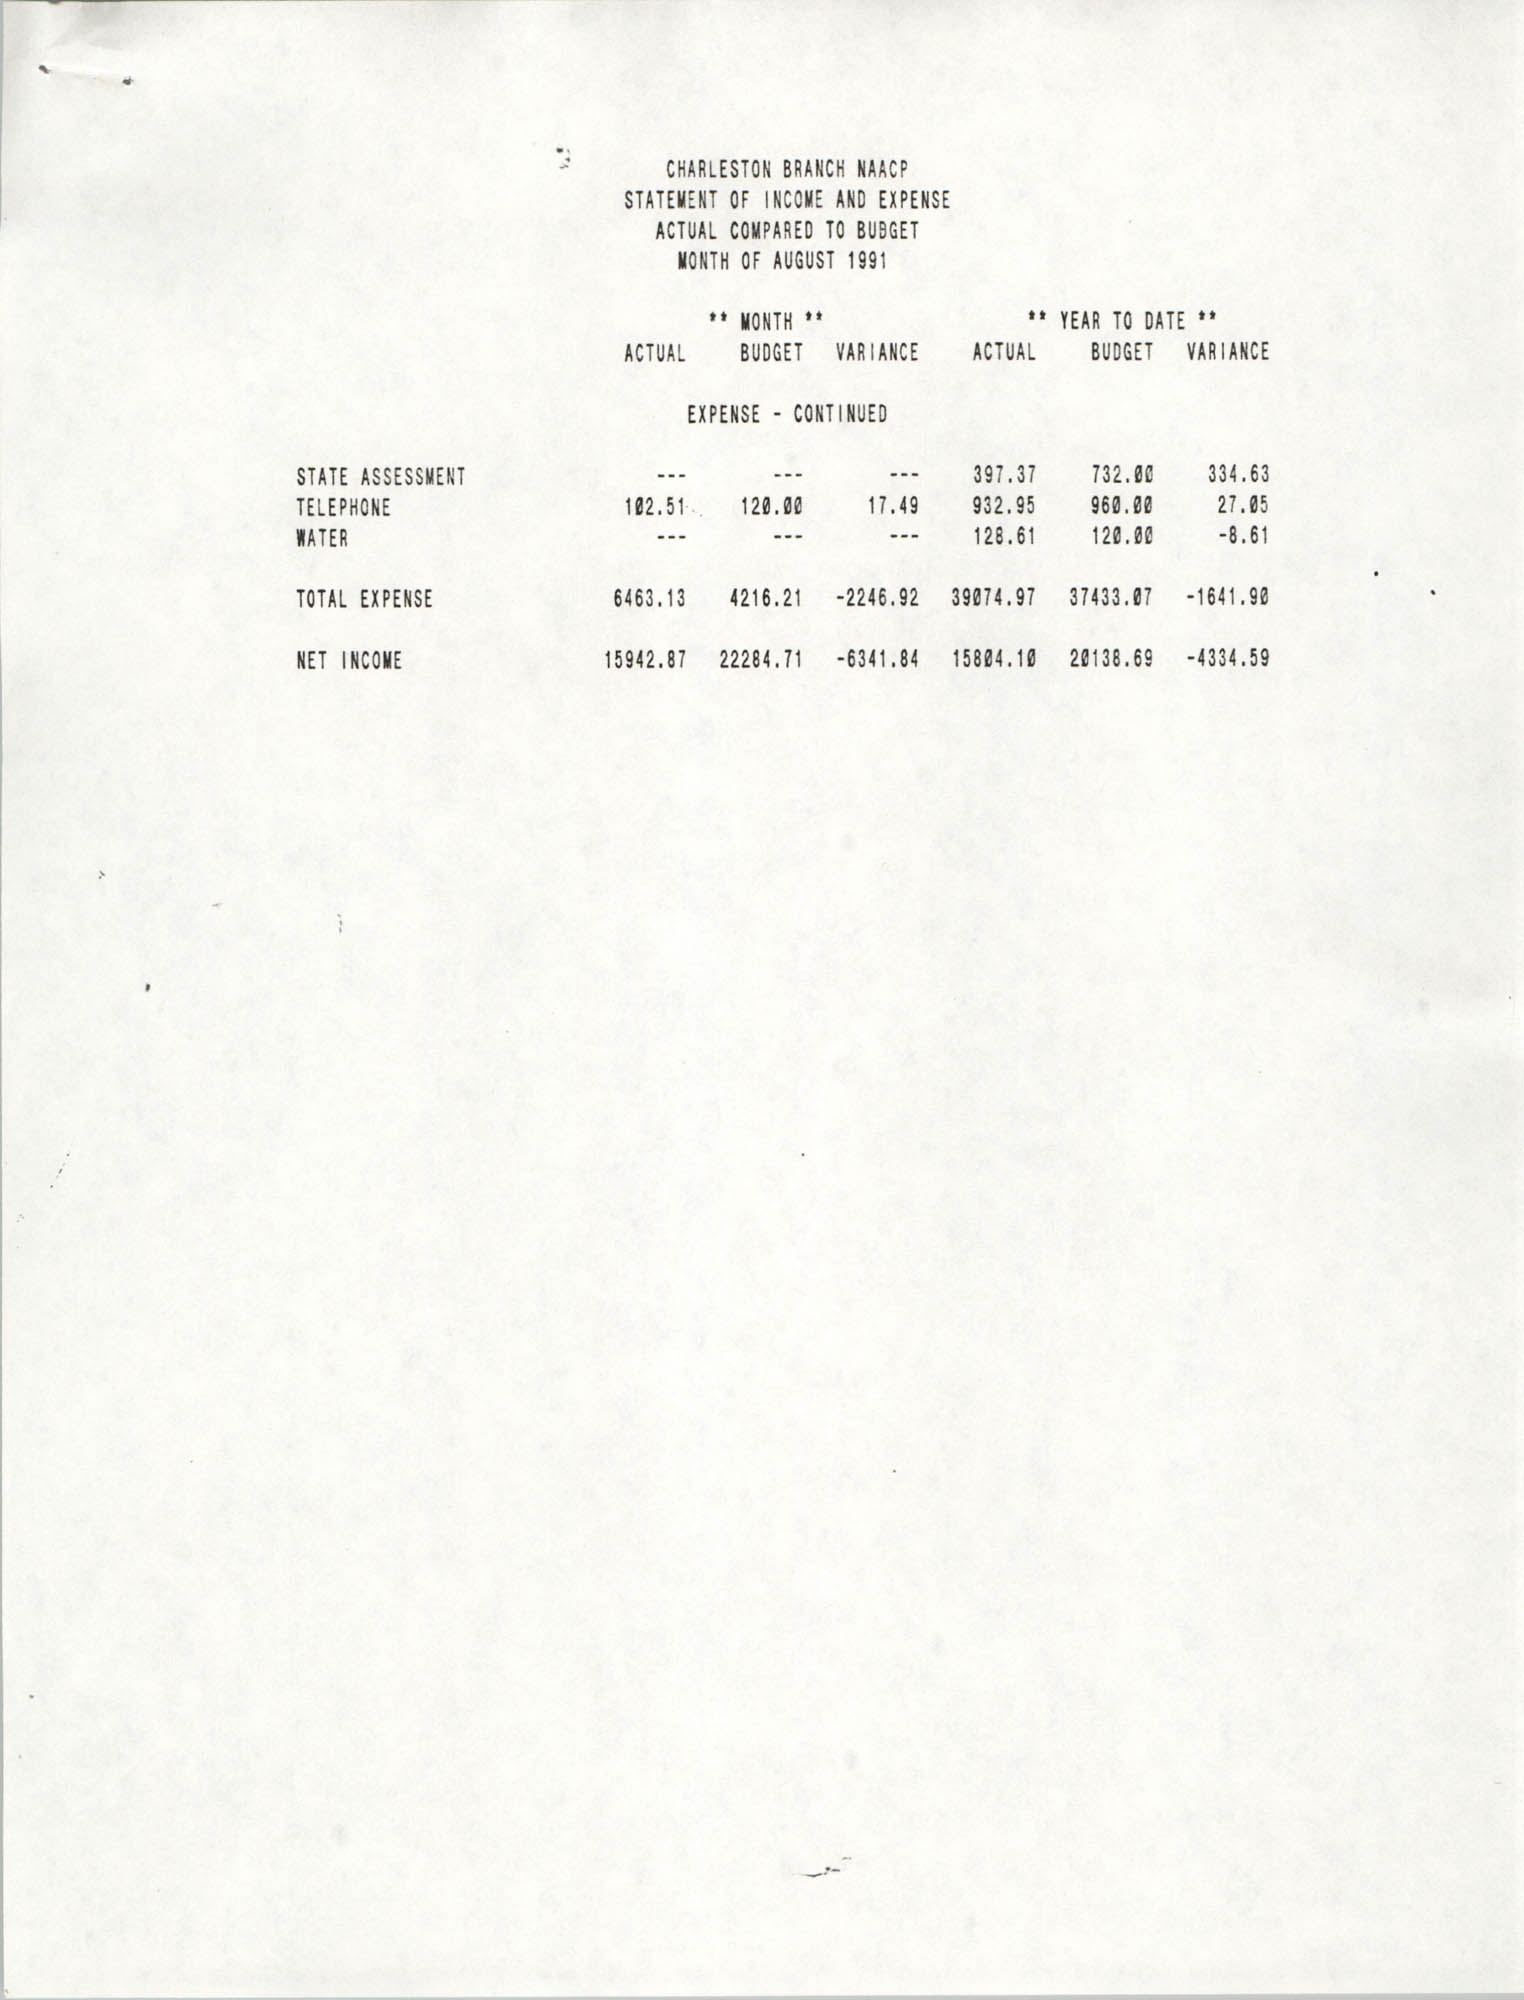 Charleston Branch of the NAACP Statement of Income and Expense, August 1991, Page 2